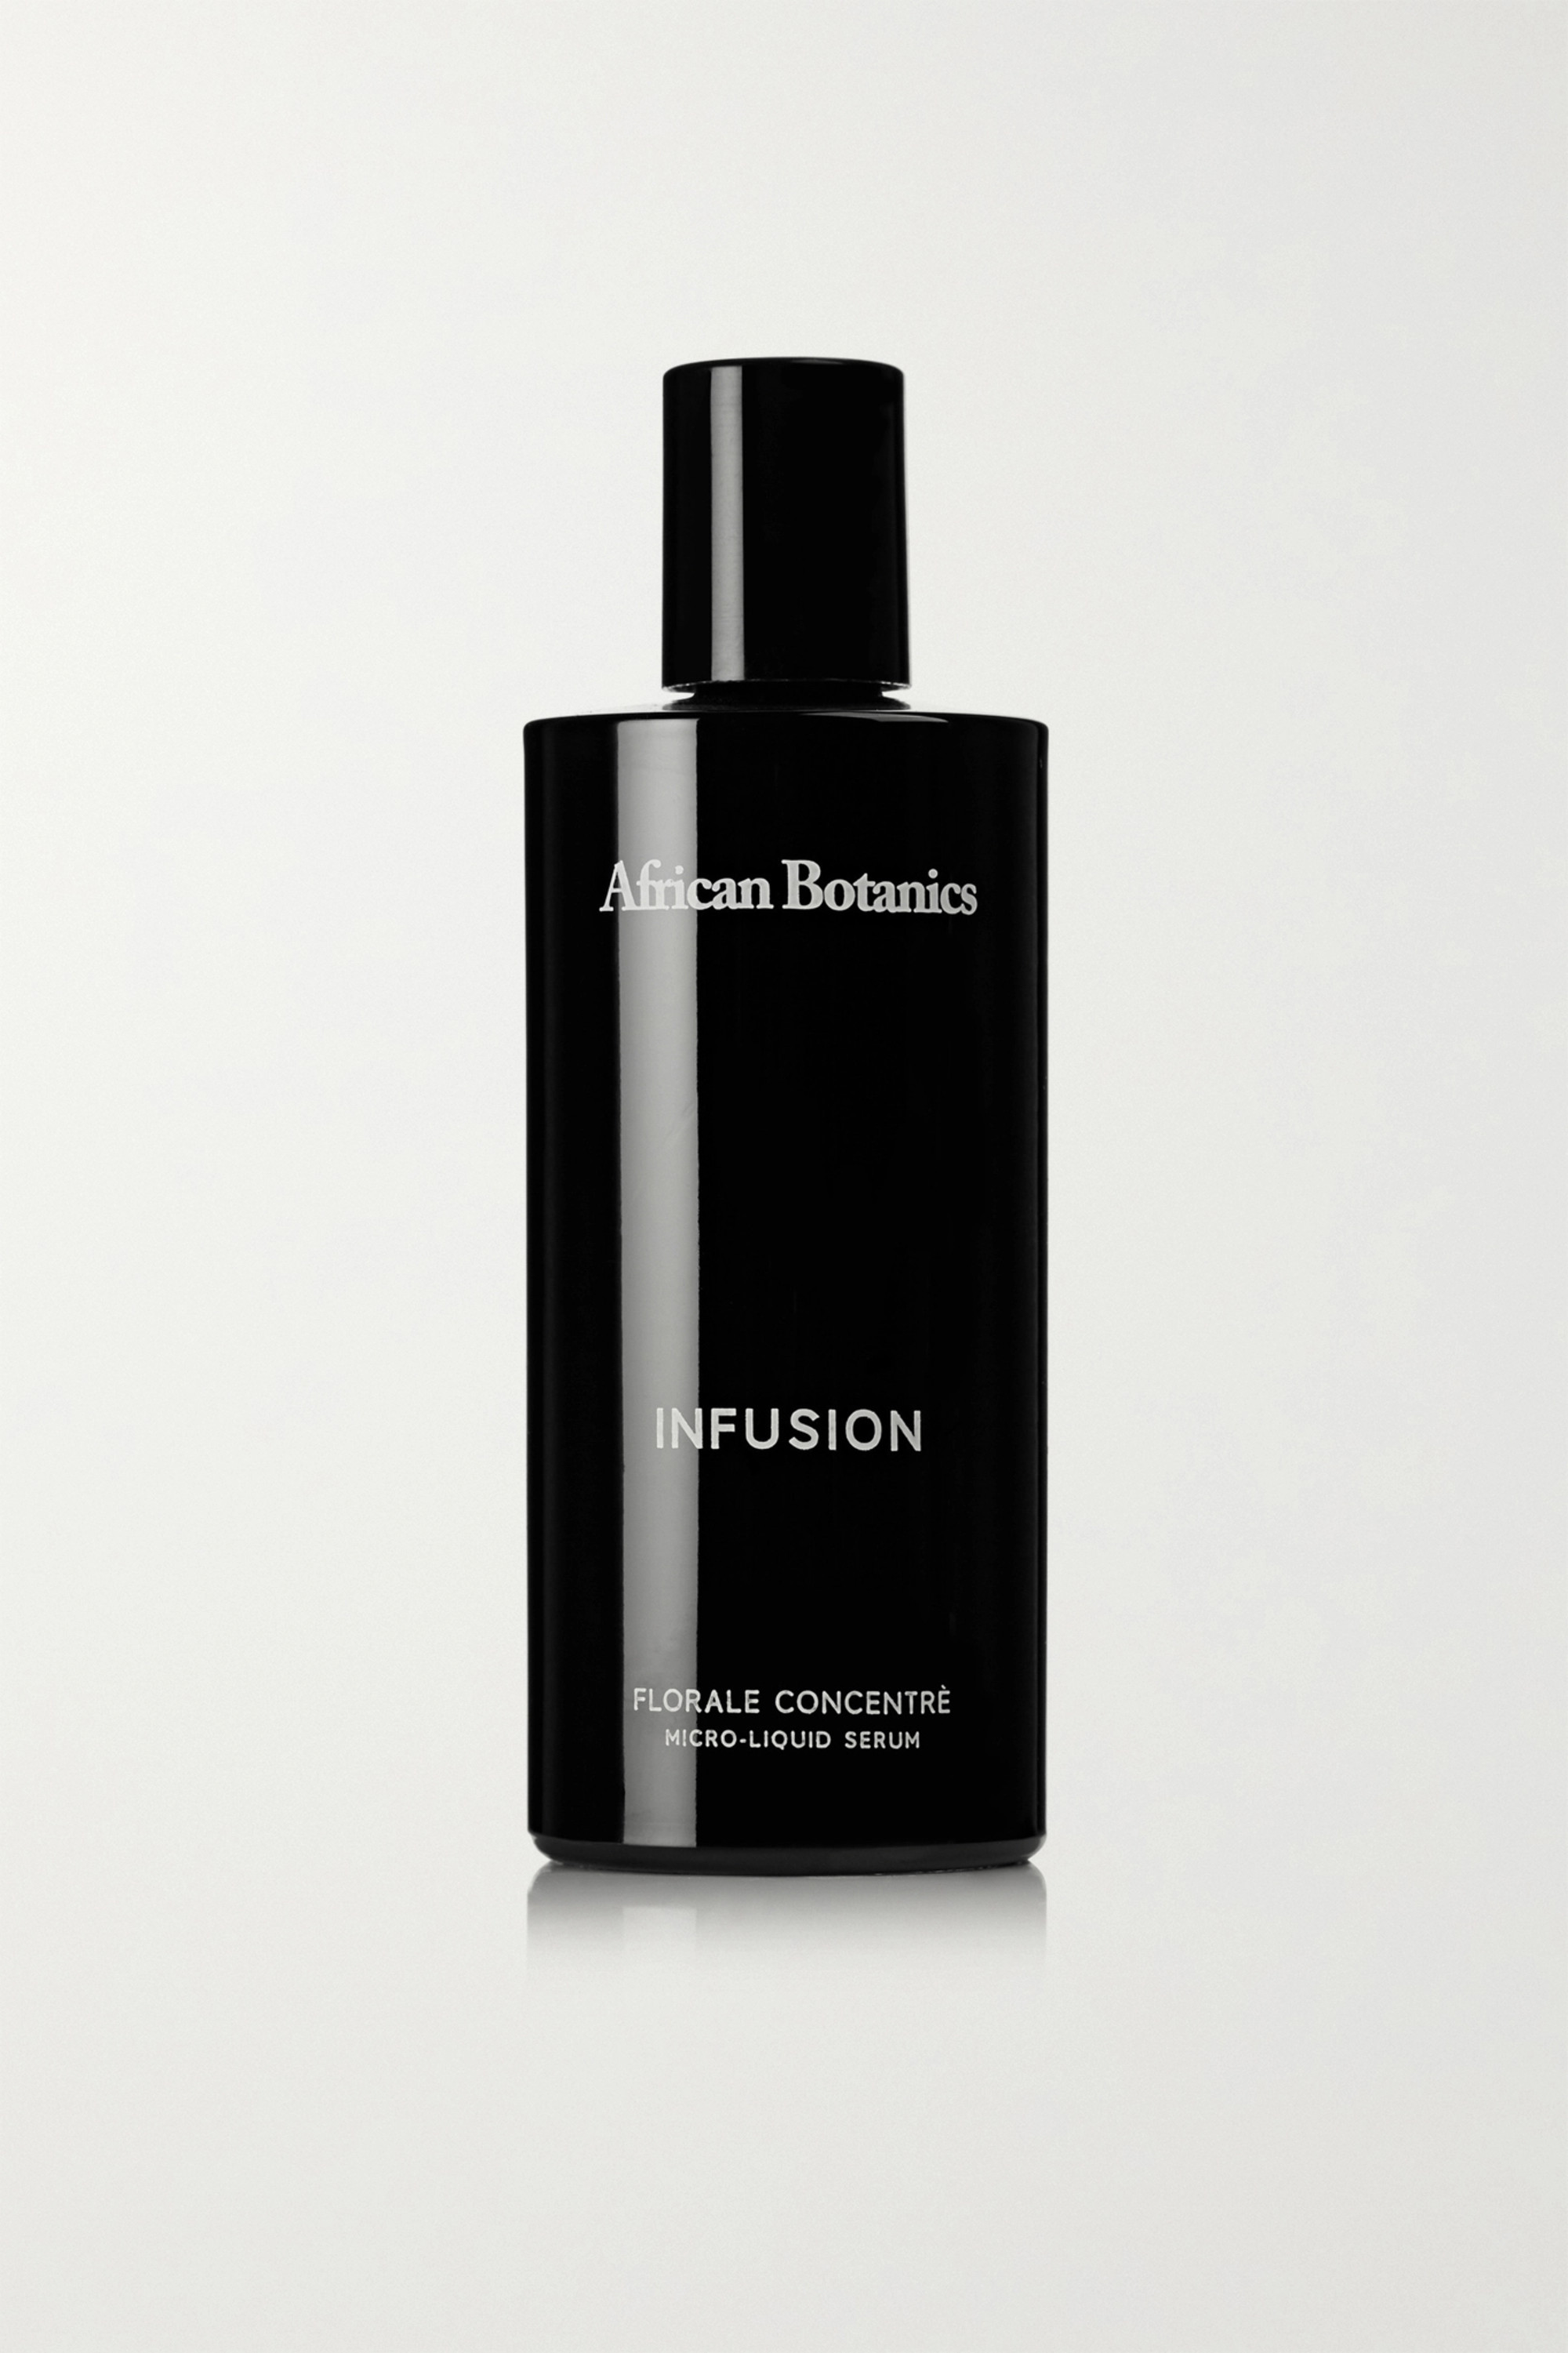 African Botanics Infusion Floral Concentrate Micro-Liquid Serum, 100ml